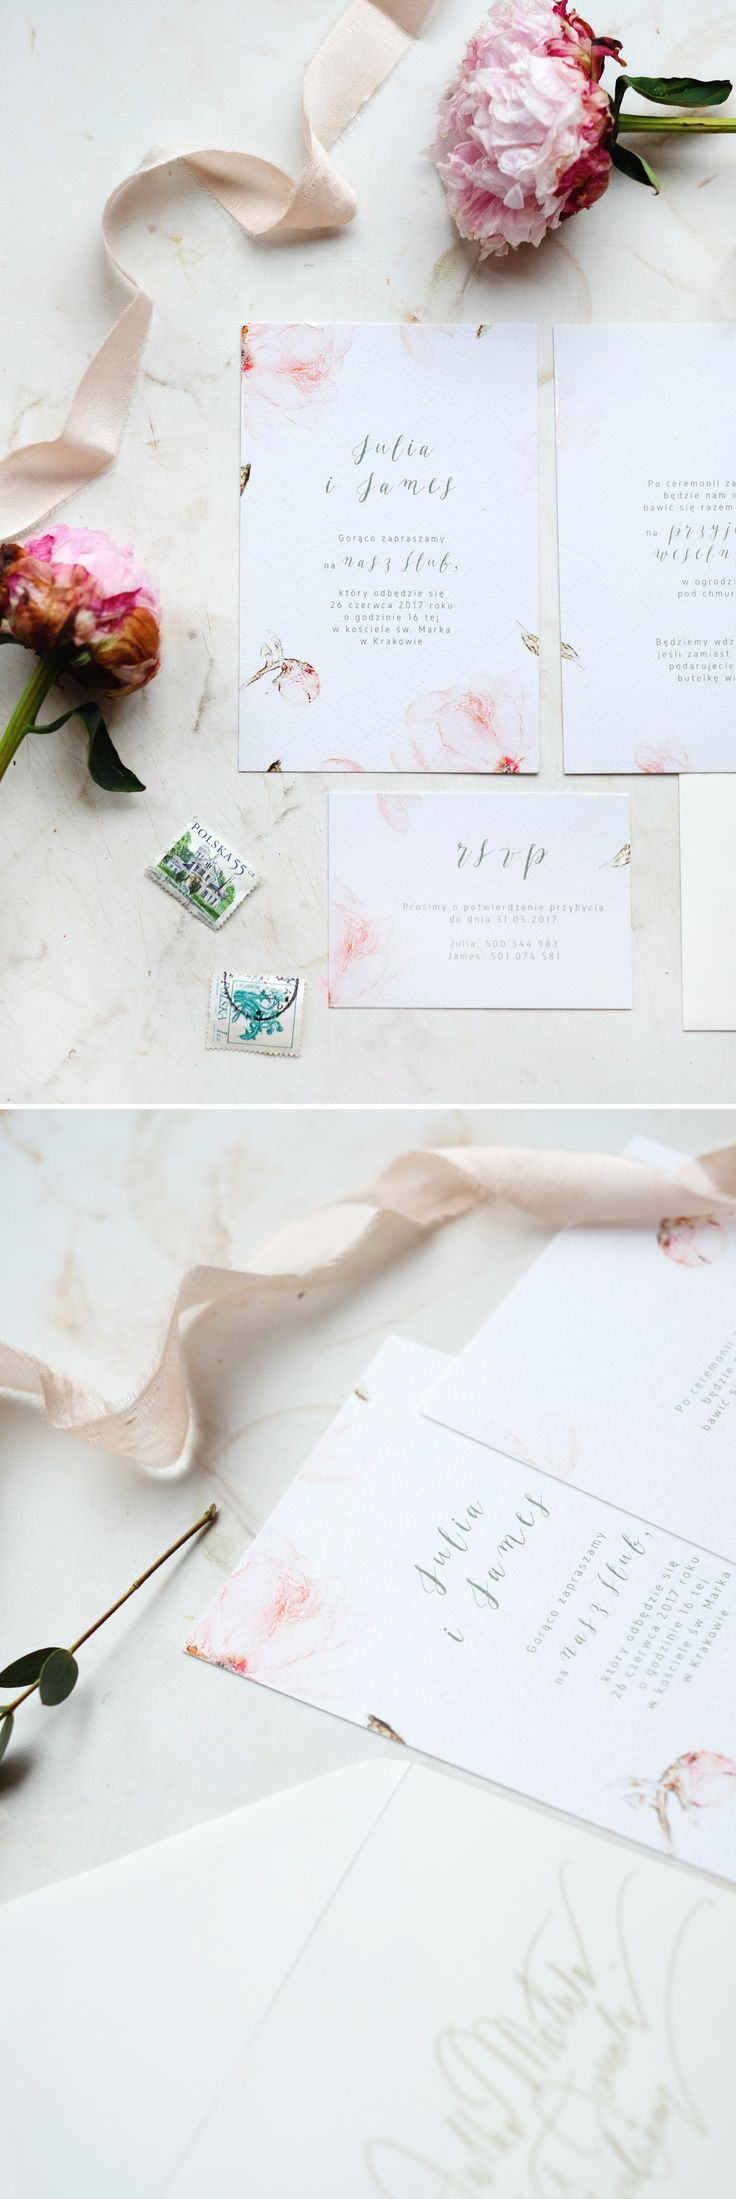 Peony Wedding Invitations beautiful watercolor stationery by Love Prints